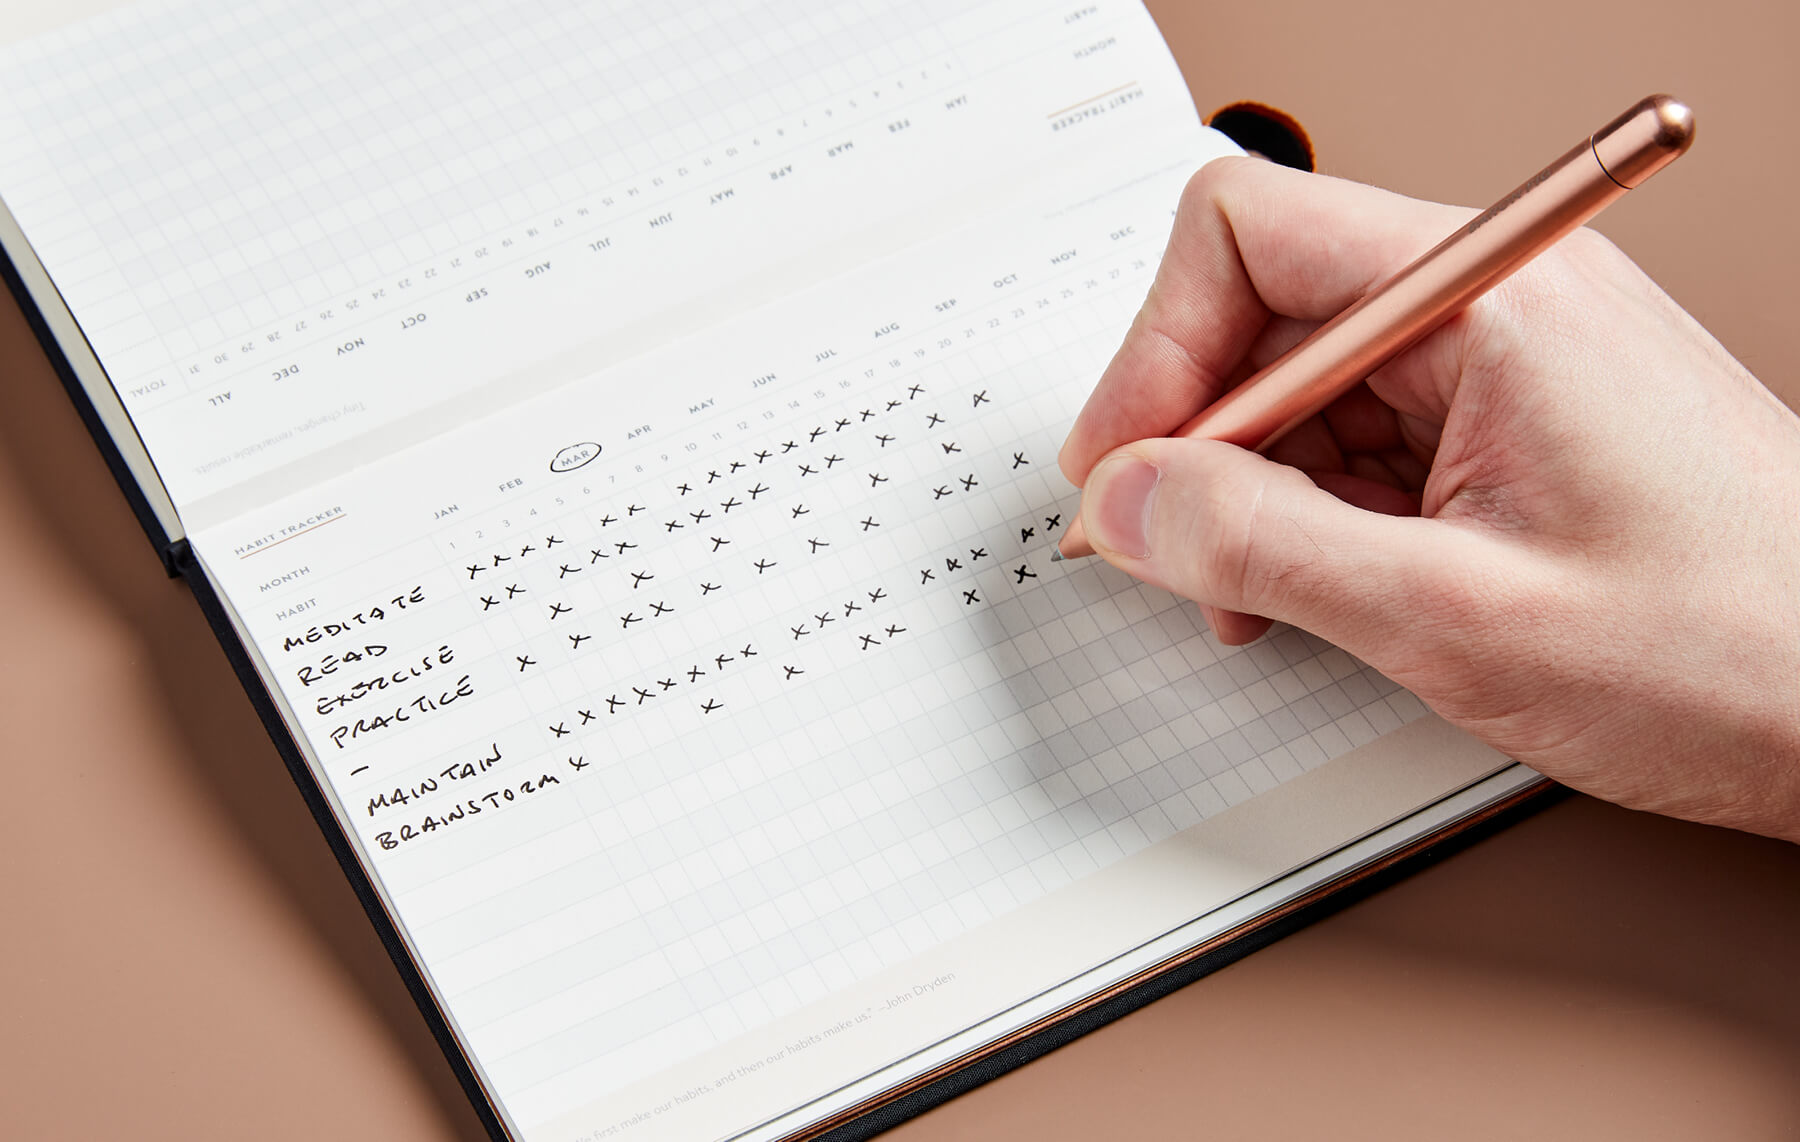 The Ultimate Habit Tracker Guide Why And How To Track